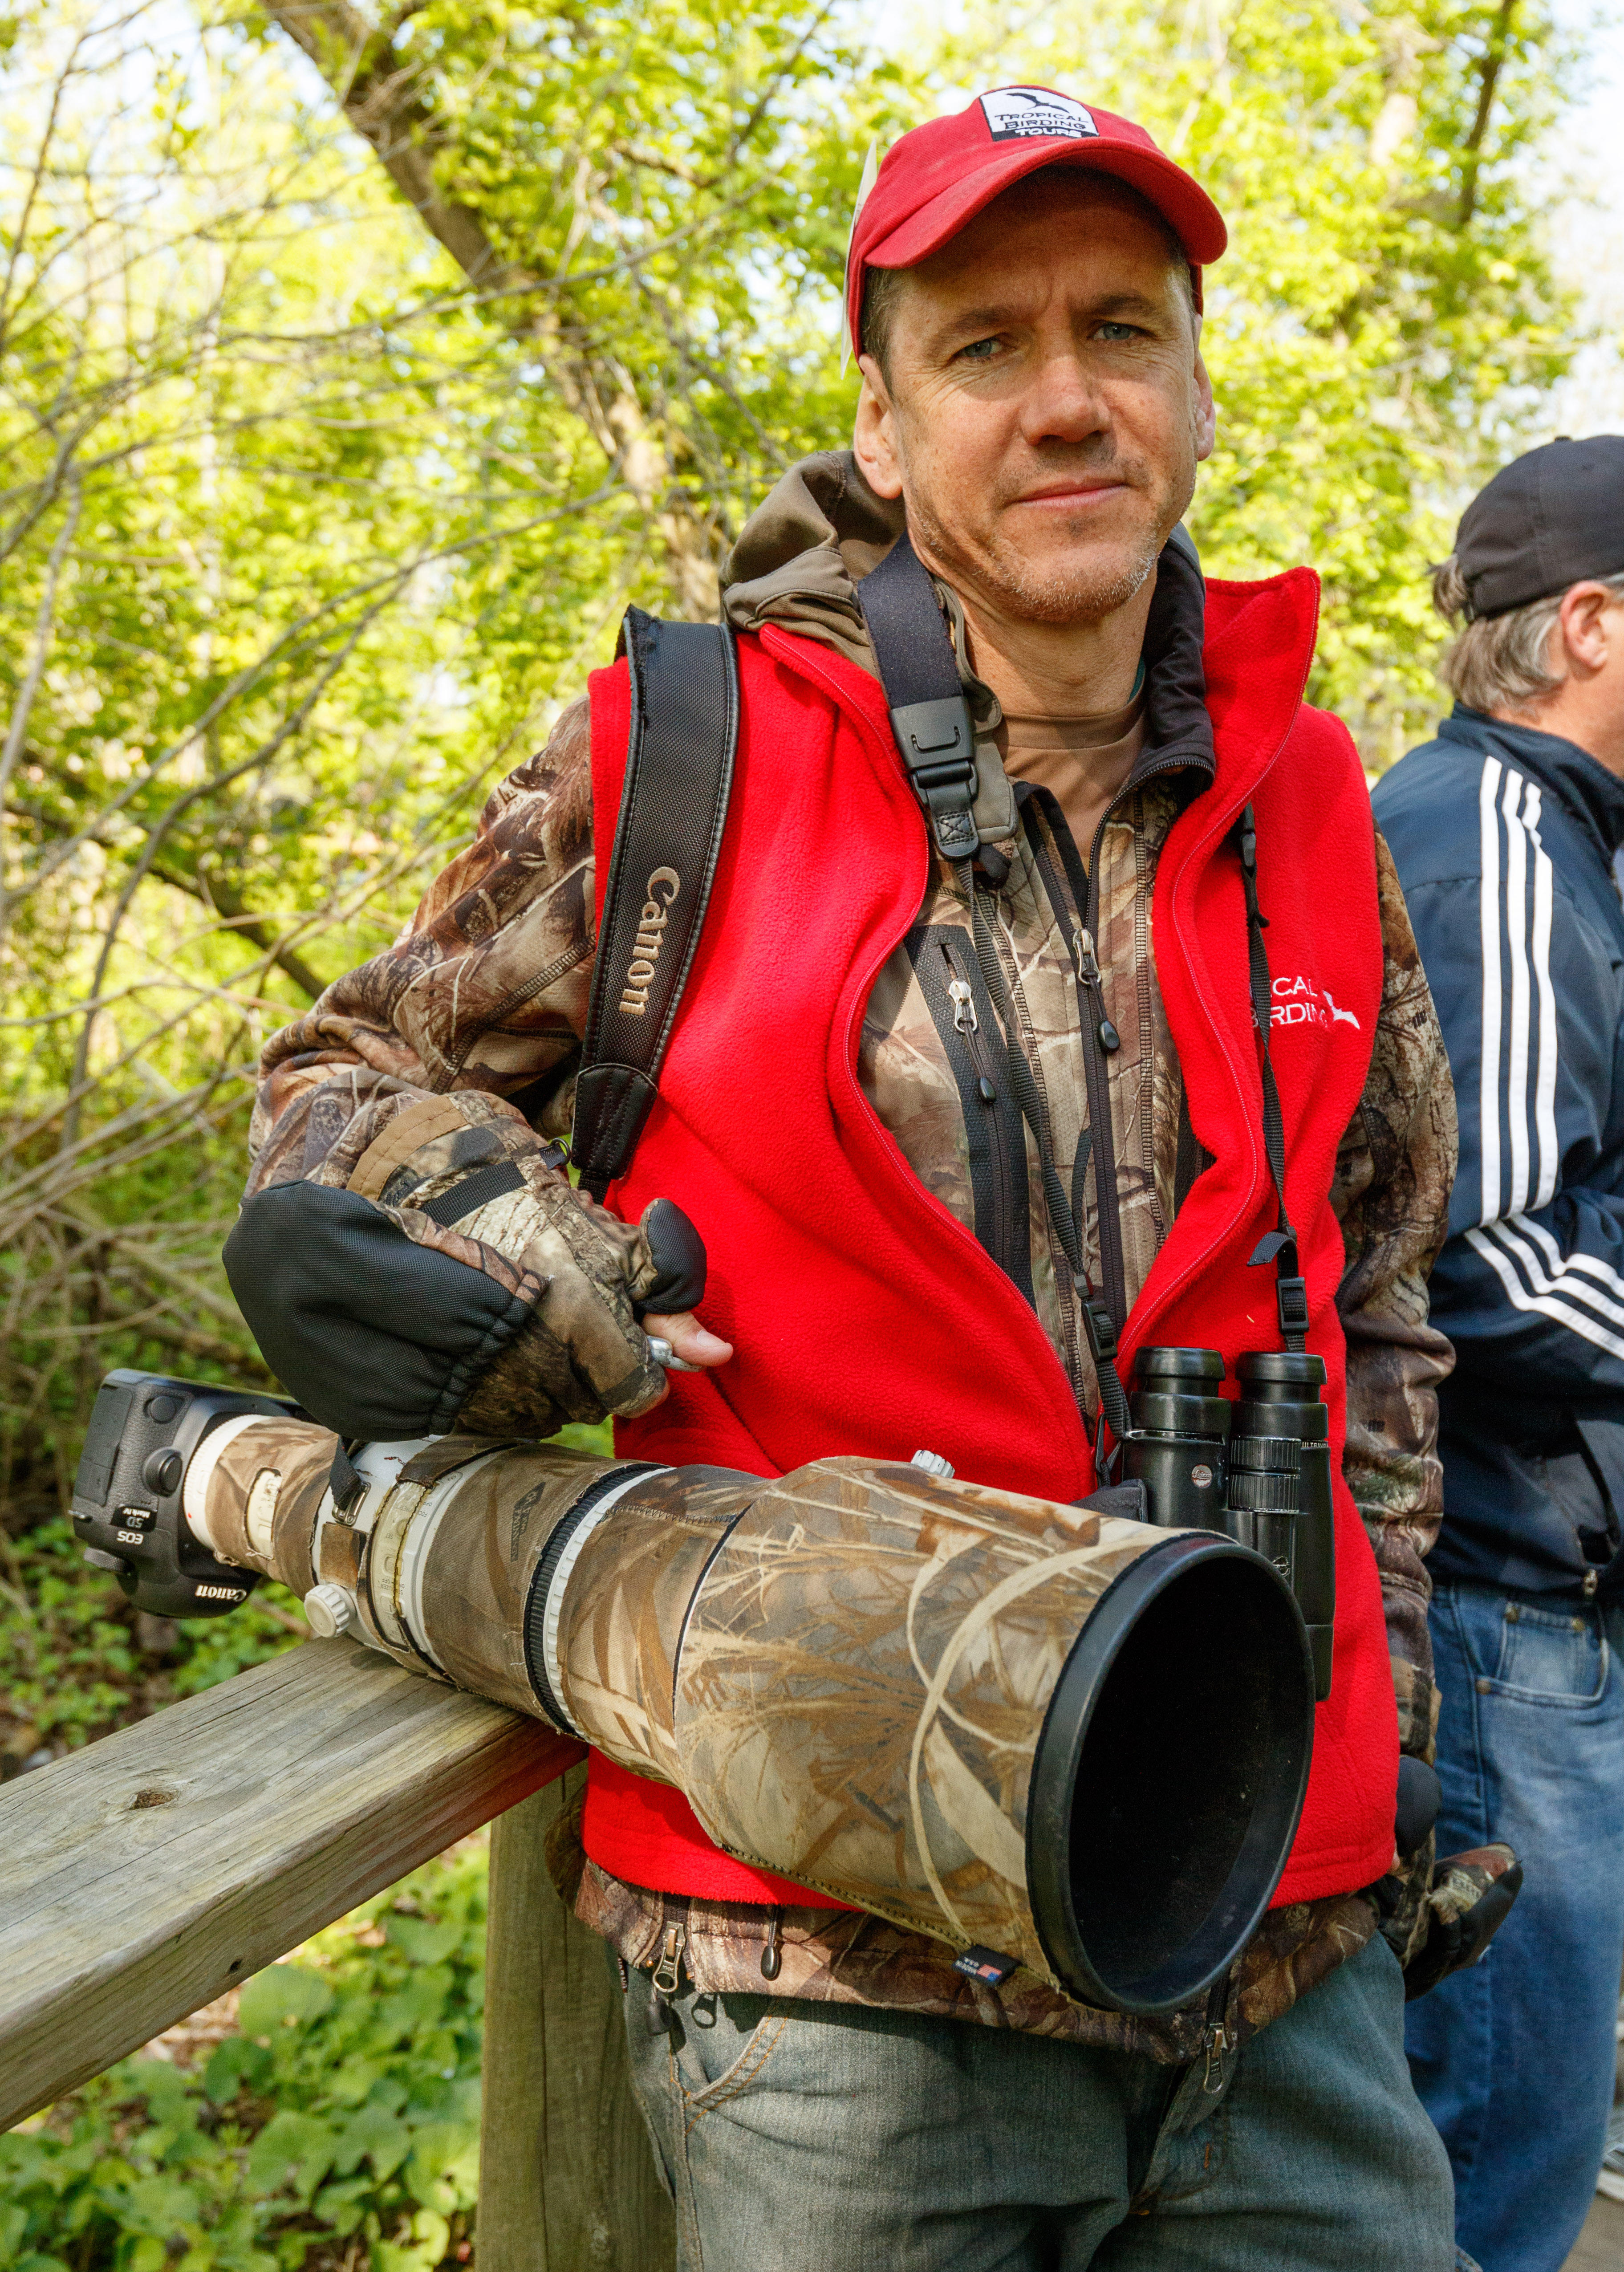 Keith Barnes, a South African living in Taiwan, carries a massive 500mm Canon supertelephoto lens and Leica Ultravid binoculars. The birding expert works for Tropical Birding, which runs 120 bird tours a year for avian enthusiasts.